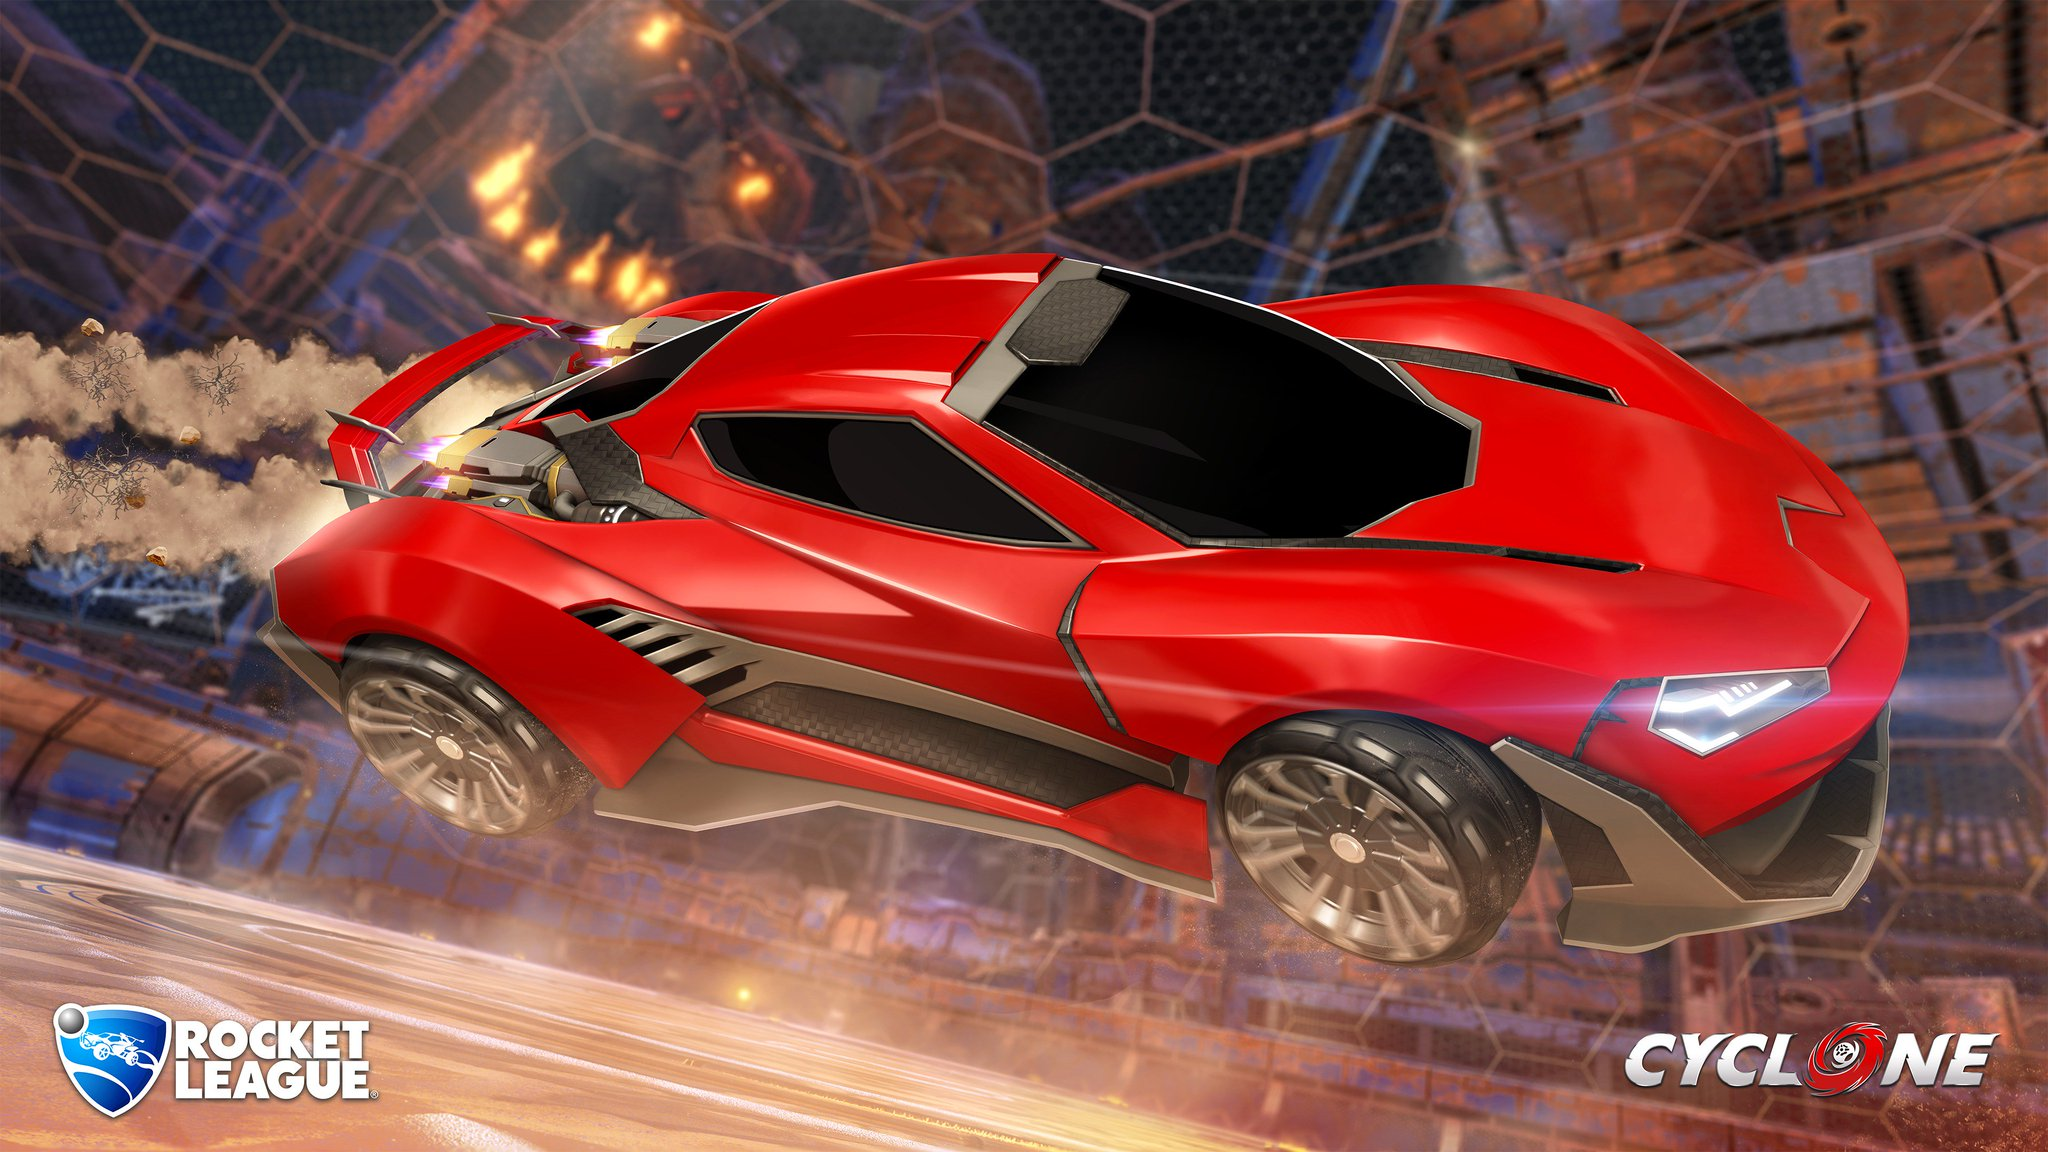 Rocket League On Twitter The Zephyr Update Goes Live On July 30 Including The New Zephyr Crate And Cyclone Battle Car Read On For More Details Https T Co Ocguu2vd49 Https T Co Vjsdup5mzw